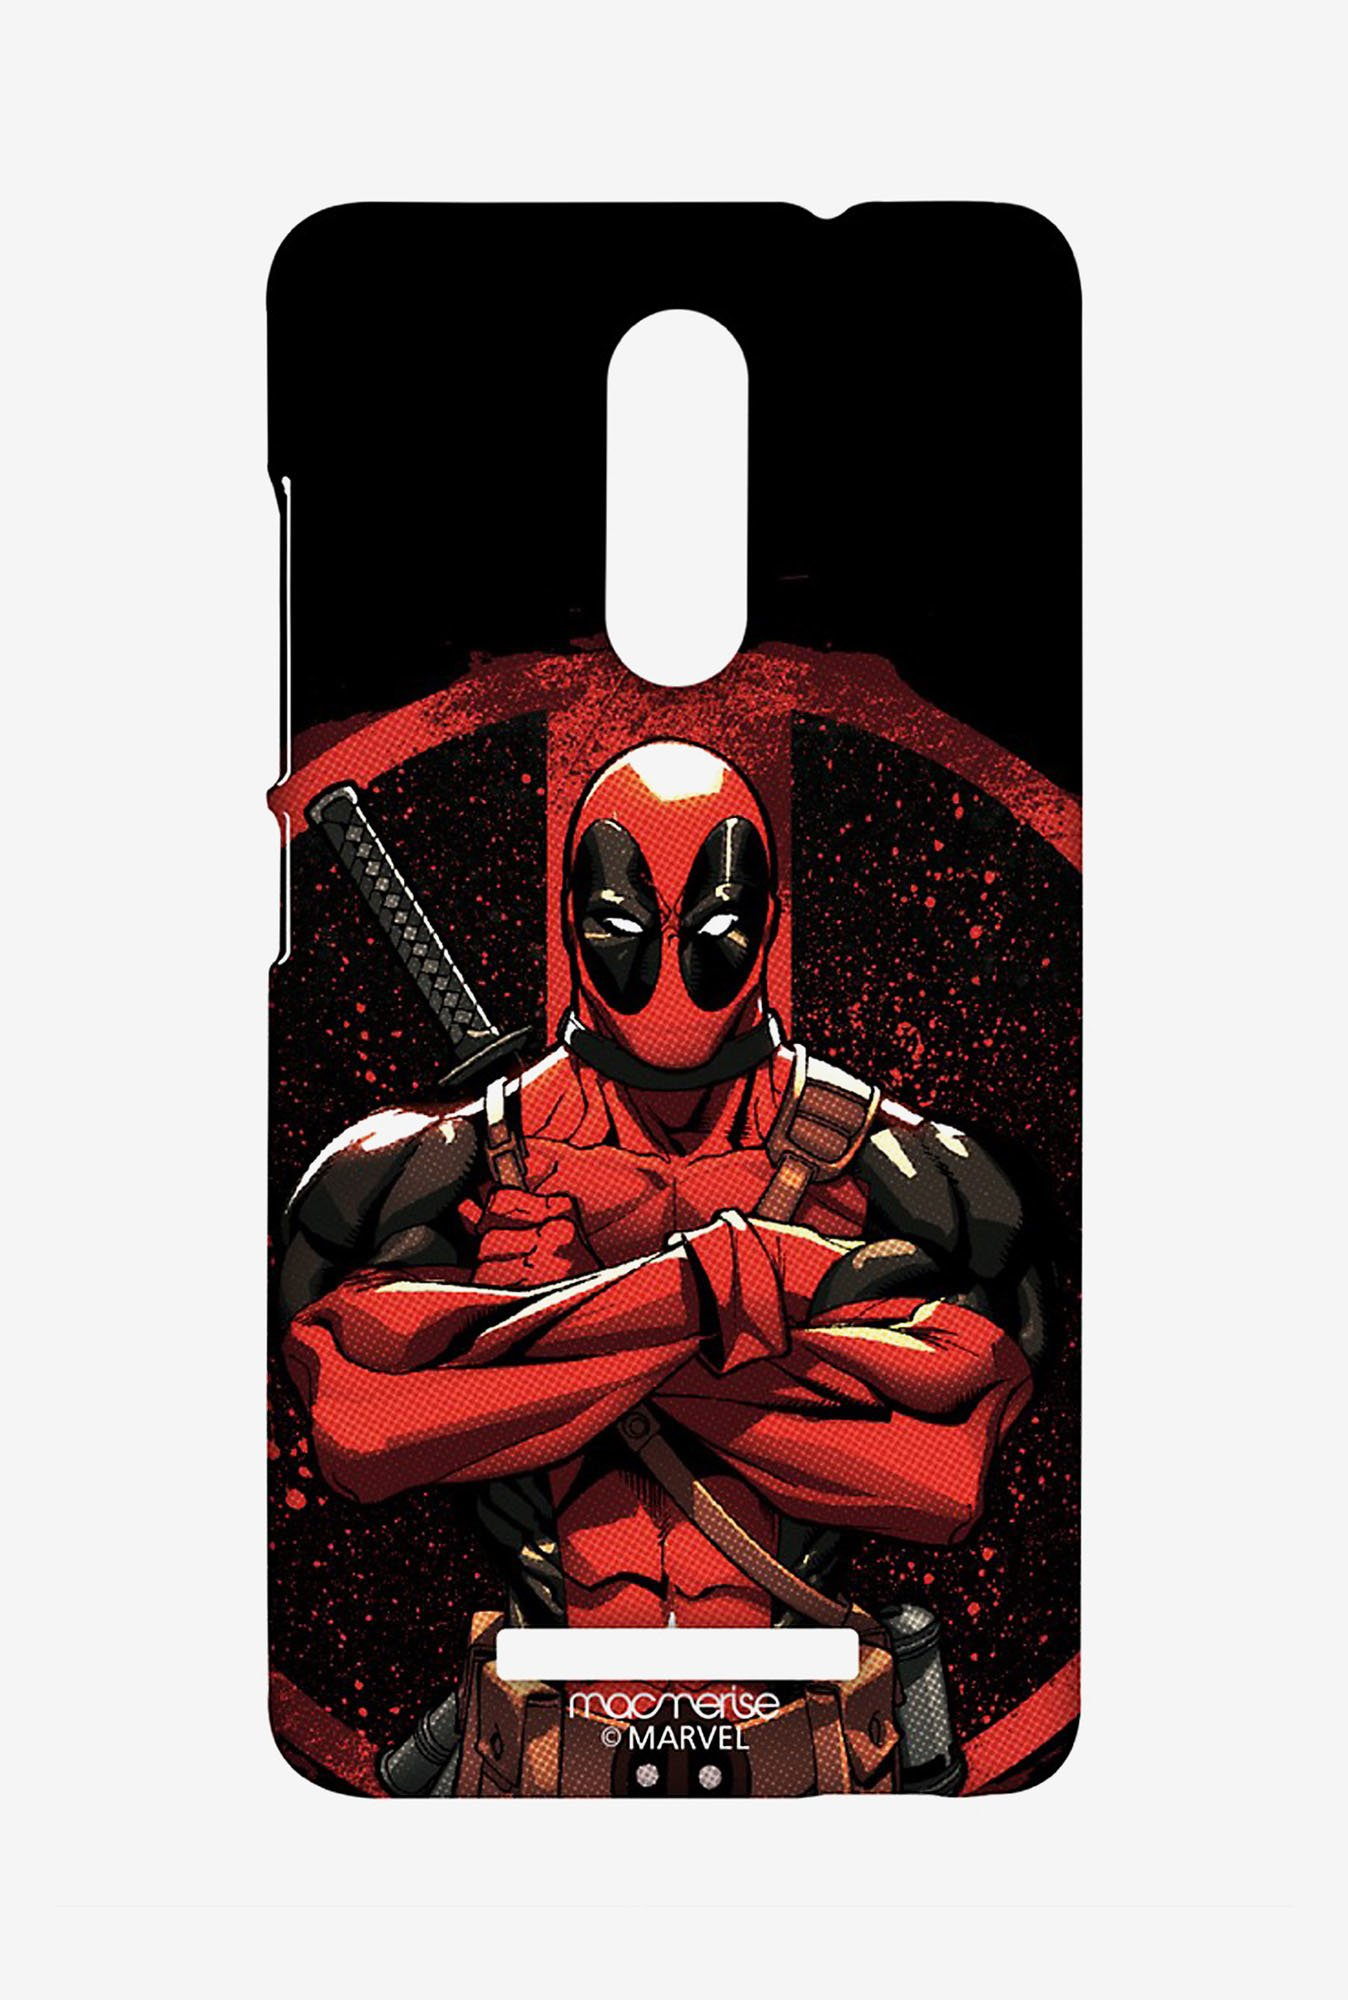 Macmerise XACN3SMM0296 Deadpool Stance Sublime Case for Xiaomi Redmi Note 3